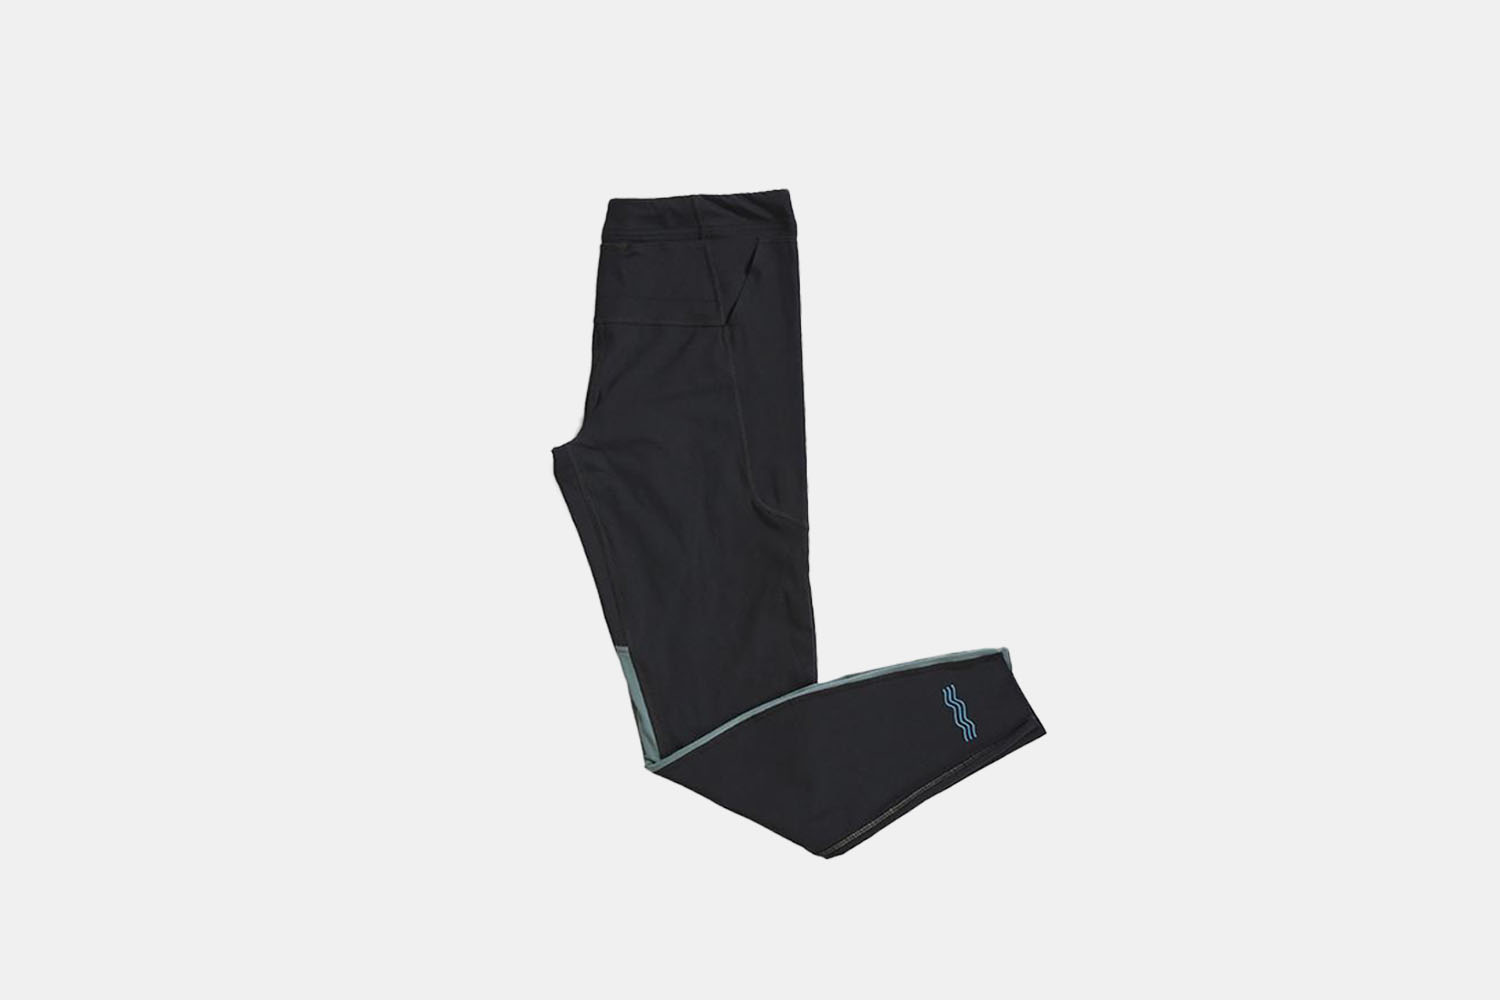 a pair of product shot black running tights